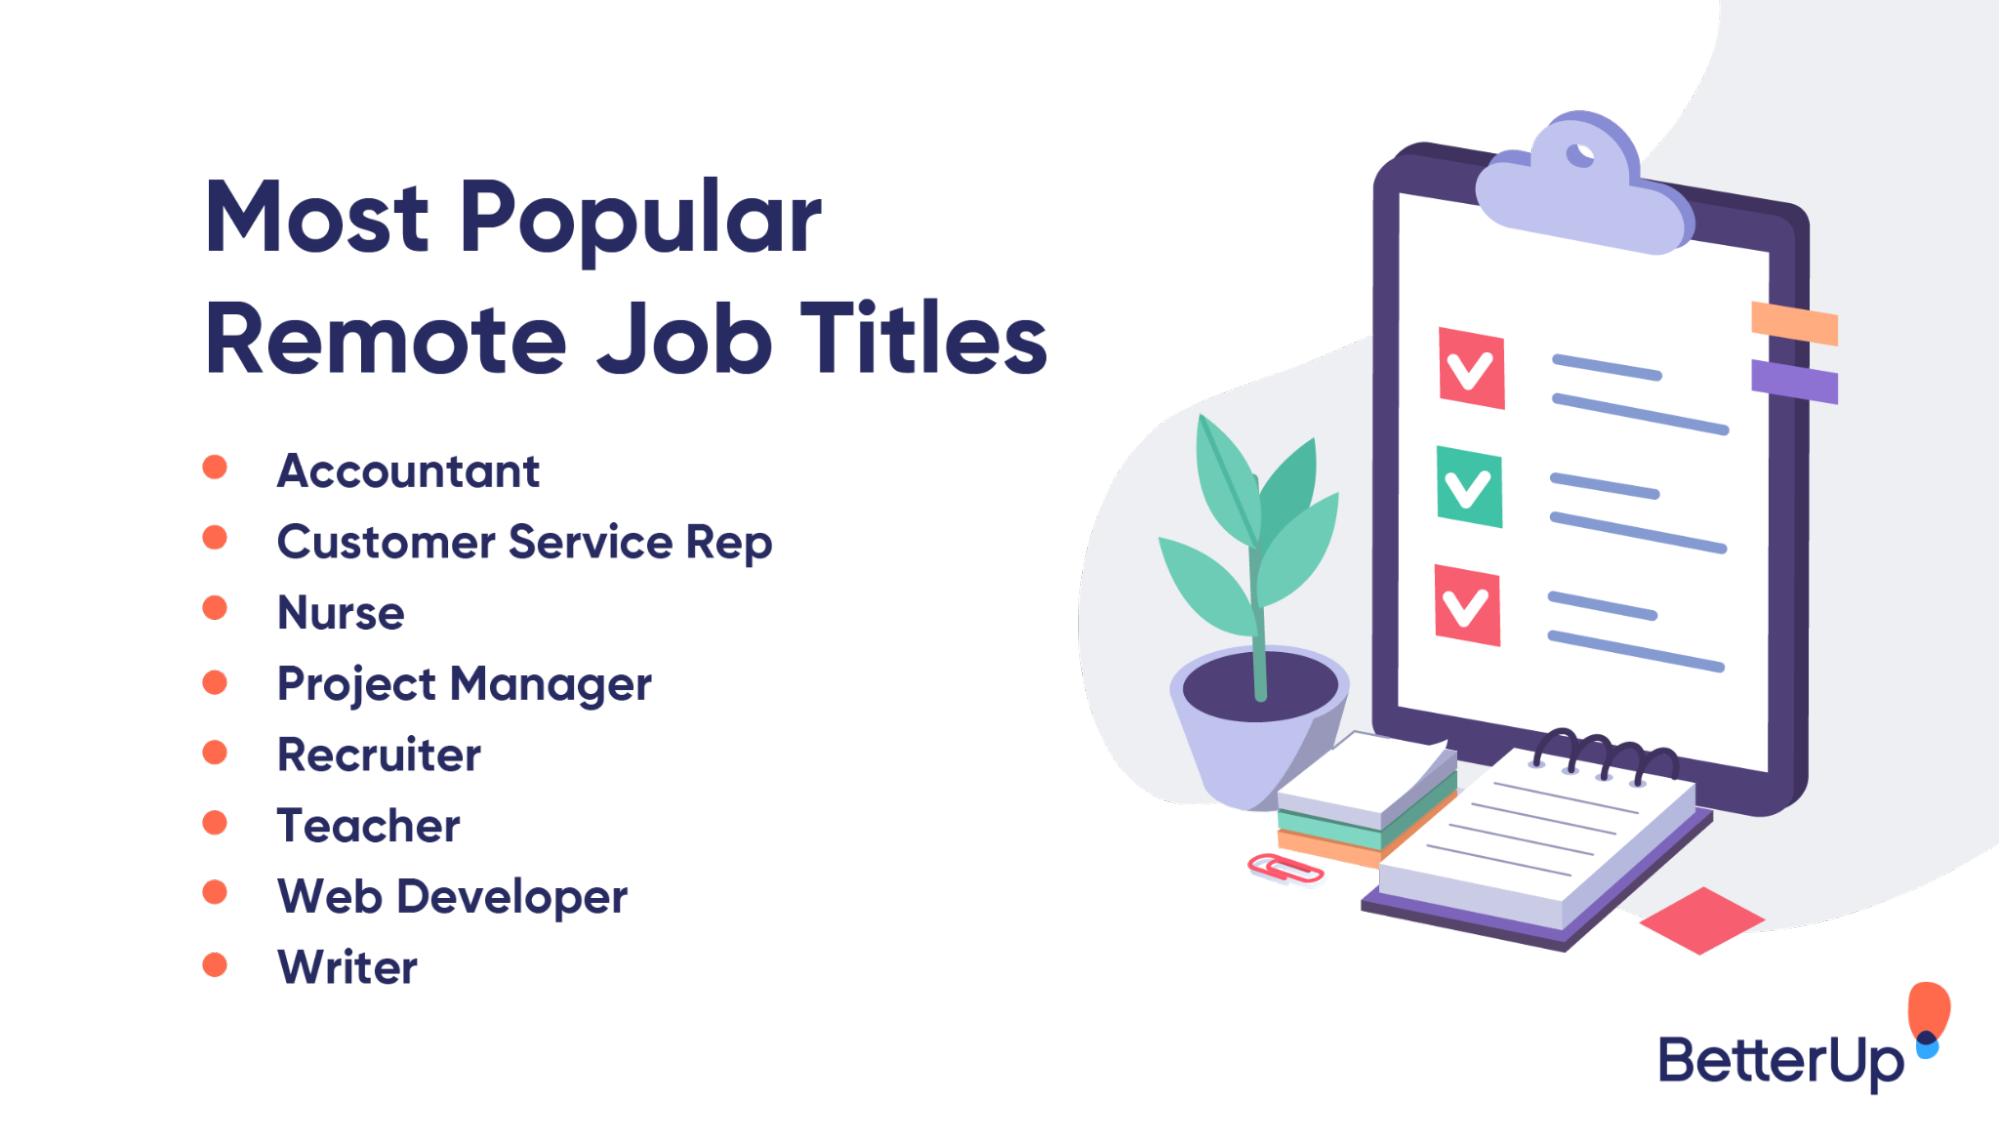 graphic-popular-remote-jobs-how-to-work-from-home